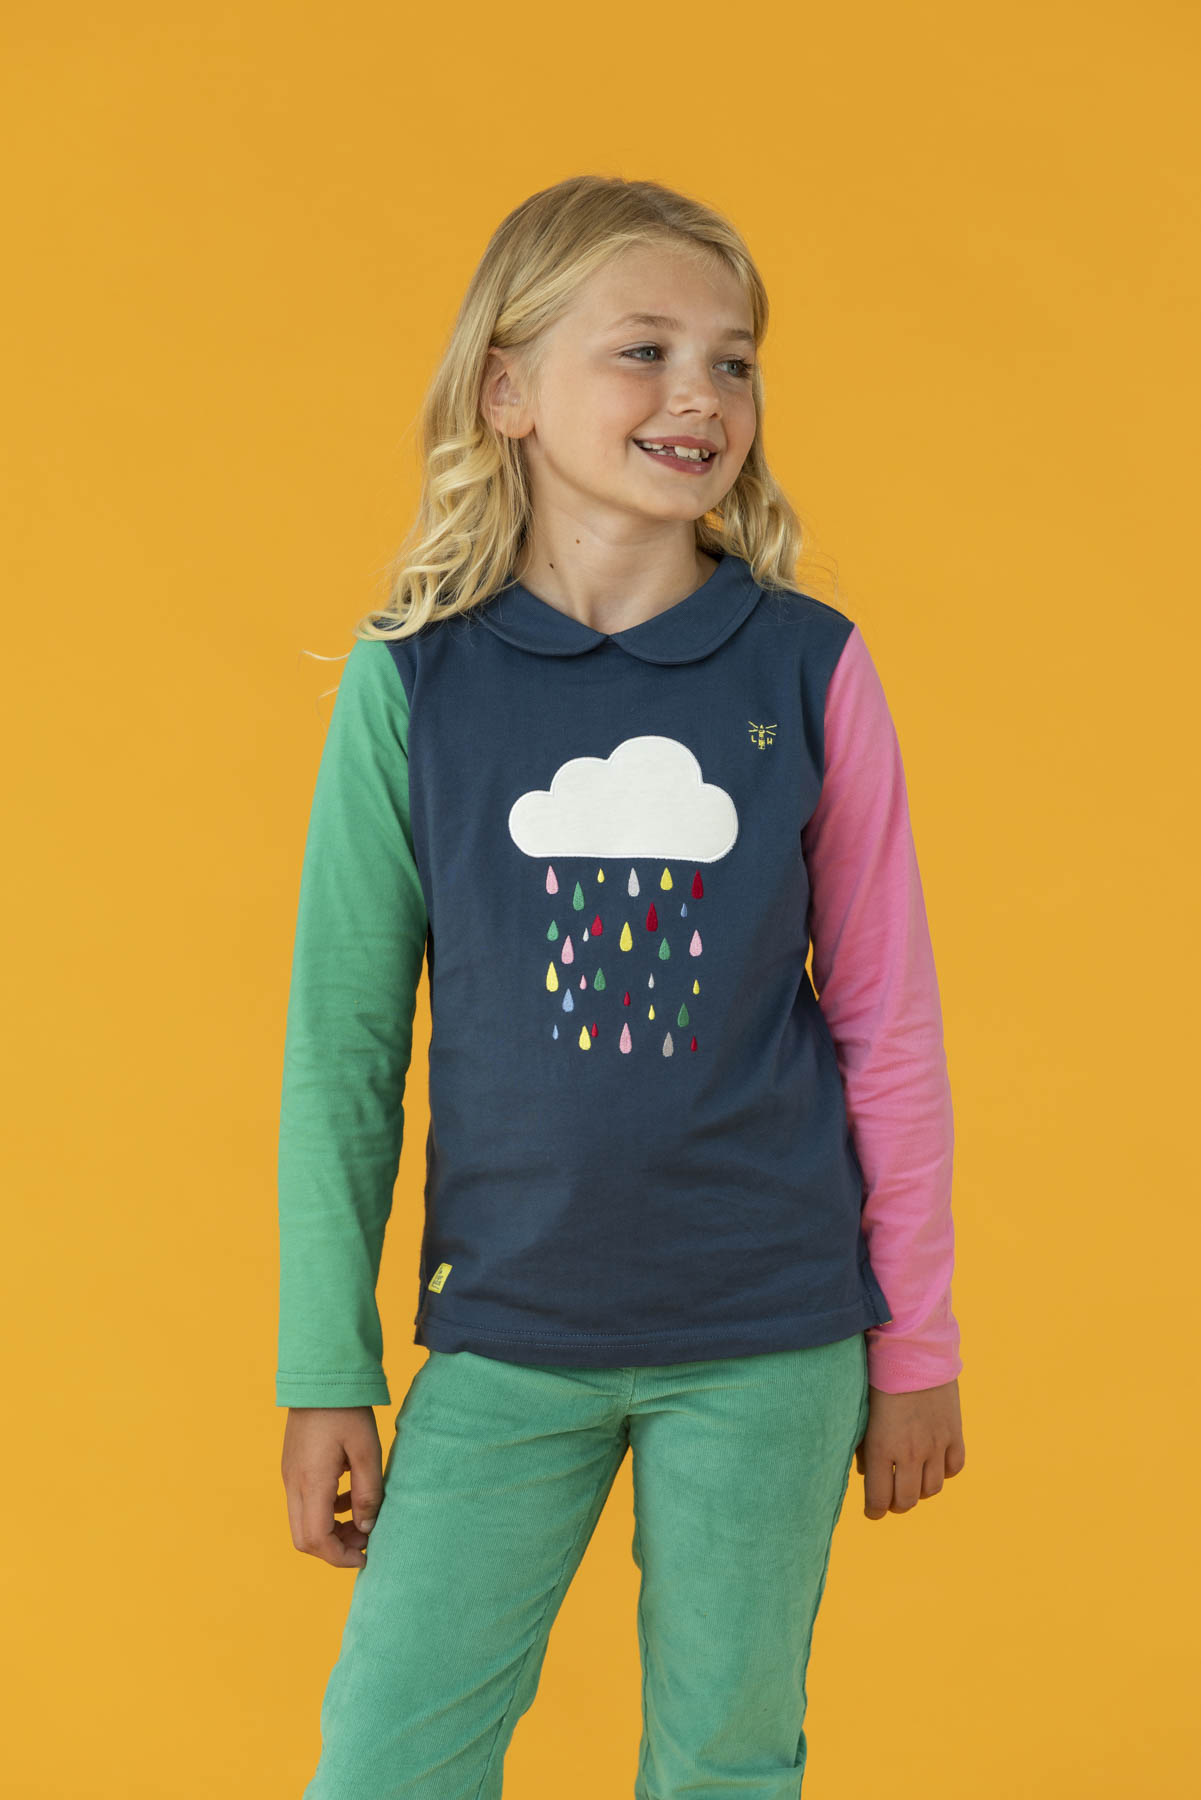 Emmie Top - Raindrop Print, Girl's Long Sleeve Top | Lighthouse